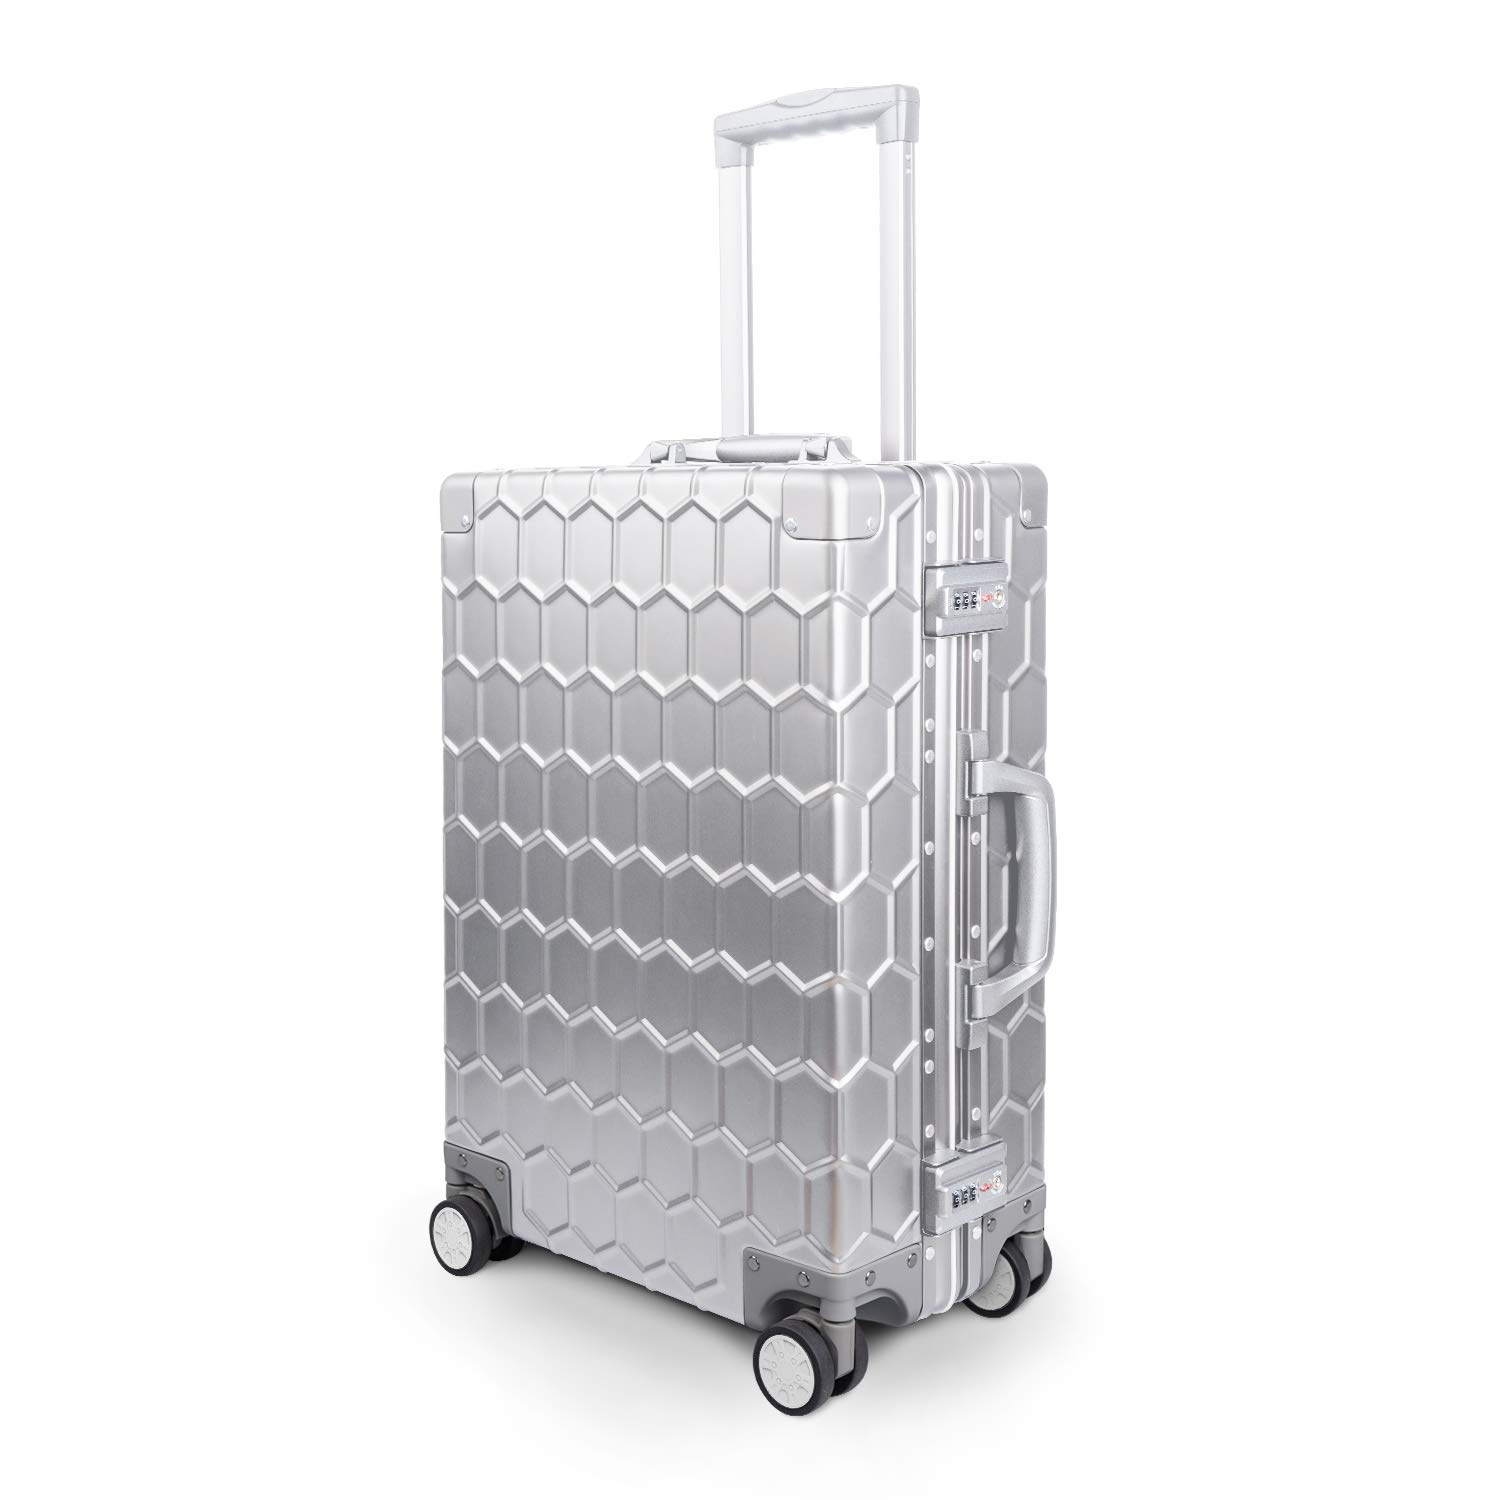 Travelking All Aluminum Carry On Luggage Hard Shell Metal Suitcase with TSA Lock Spinner Wheels New Arrival Silver, 20 Inch